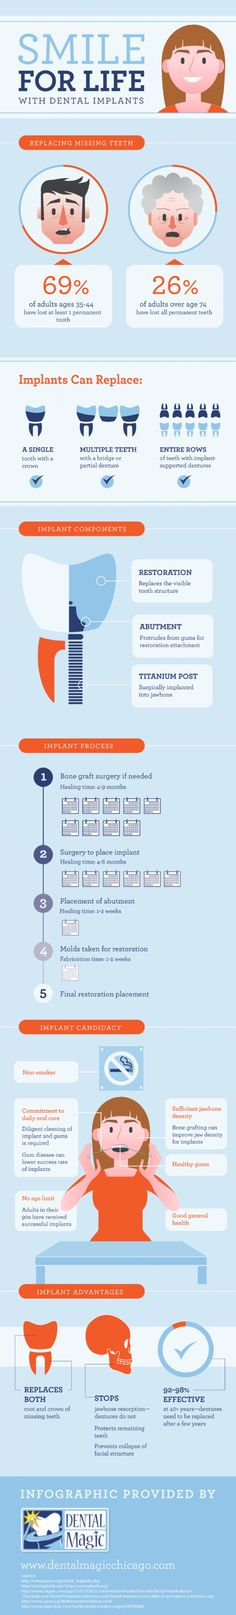 smile-for-life-with-dental-implants Interesting infographic. Says everything you should know about dental implants.